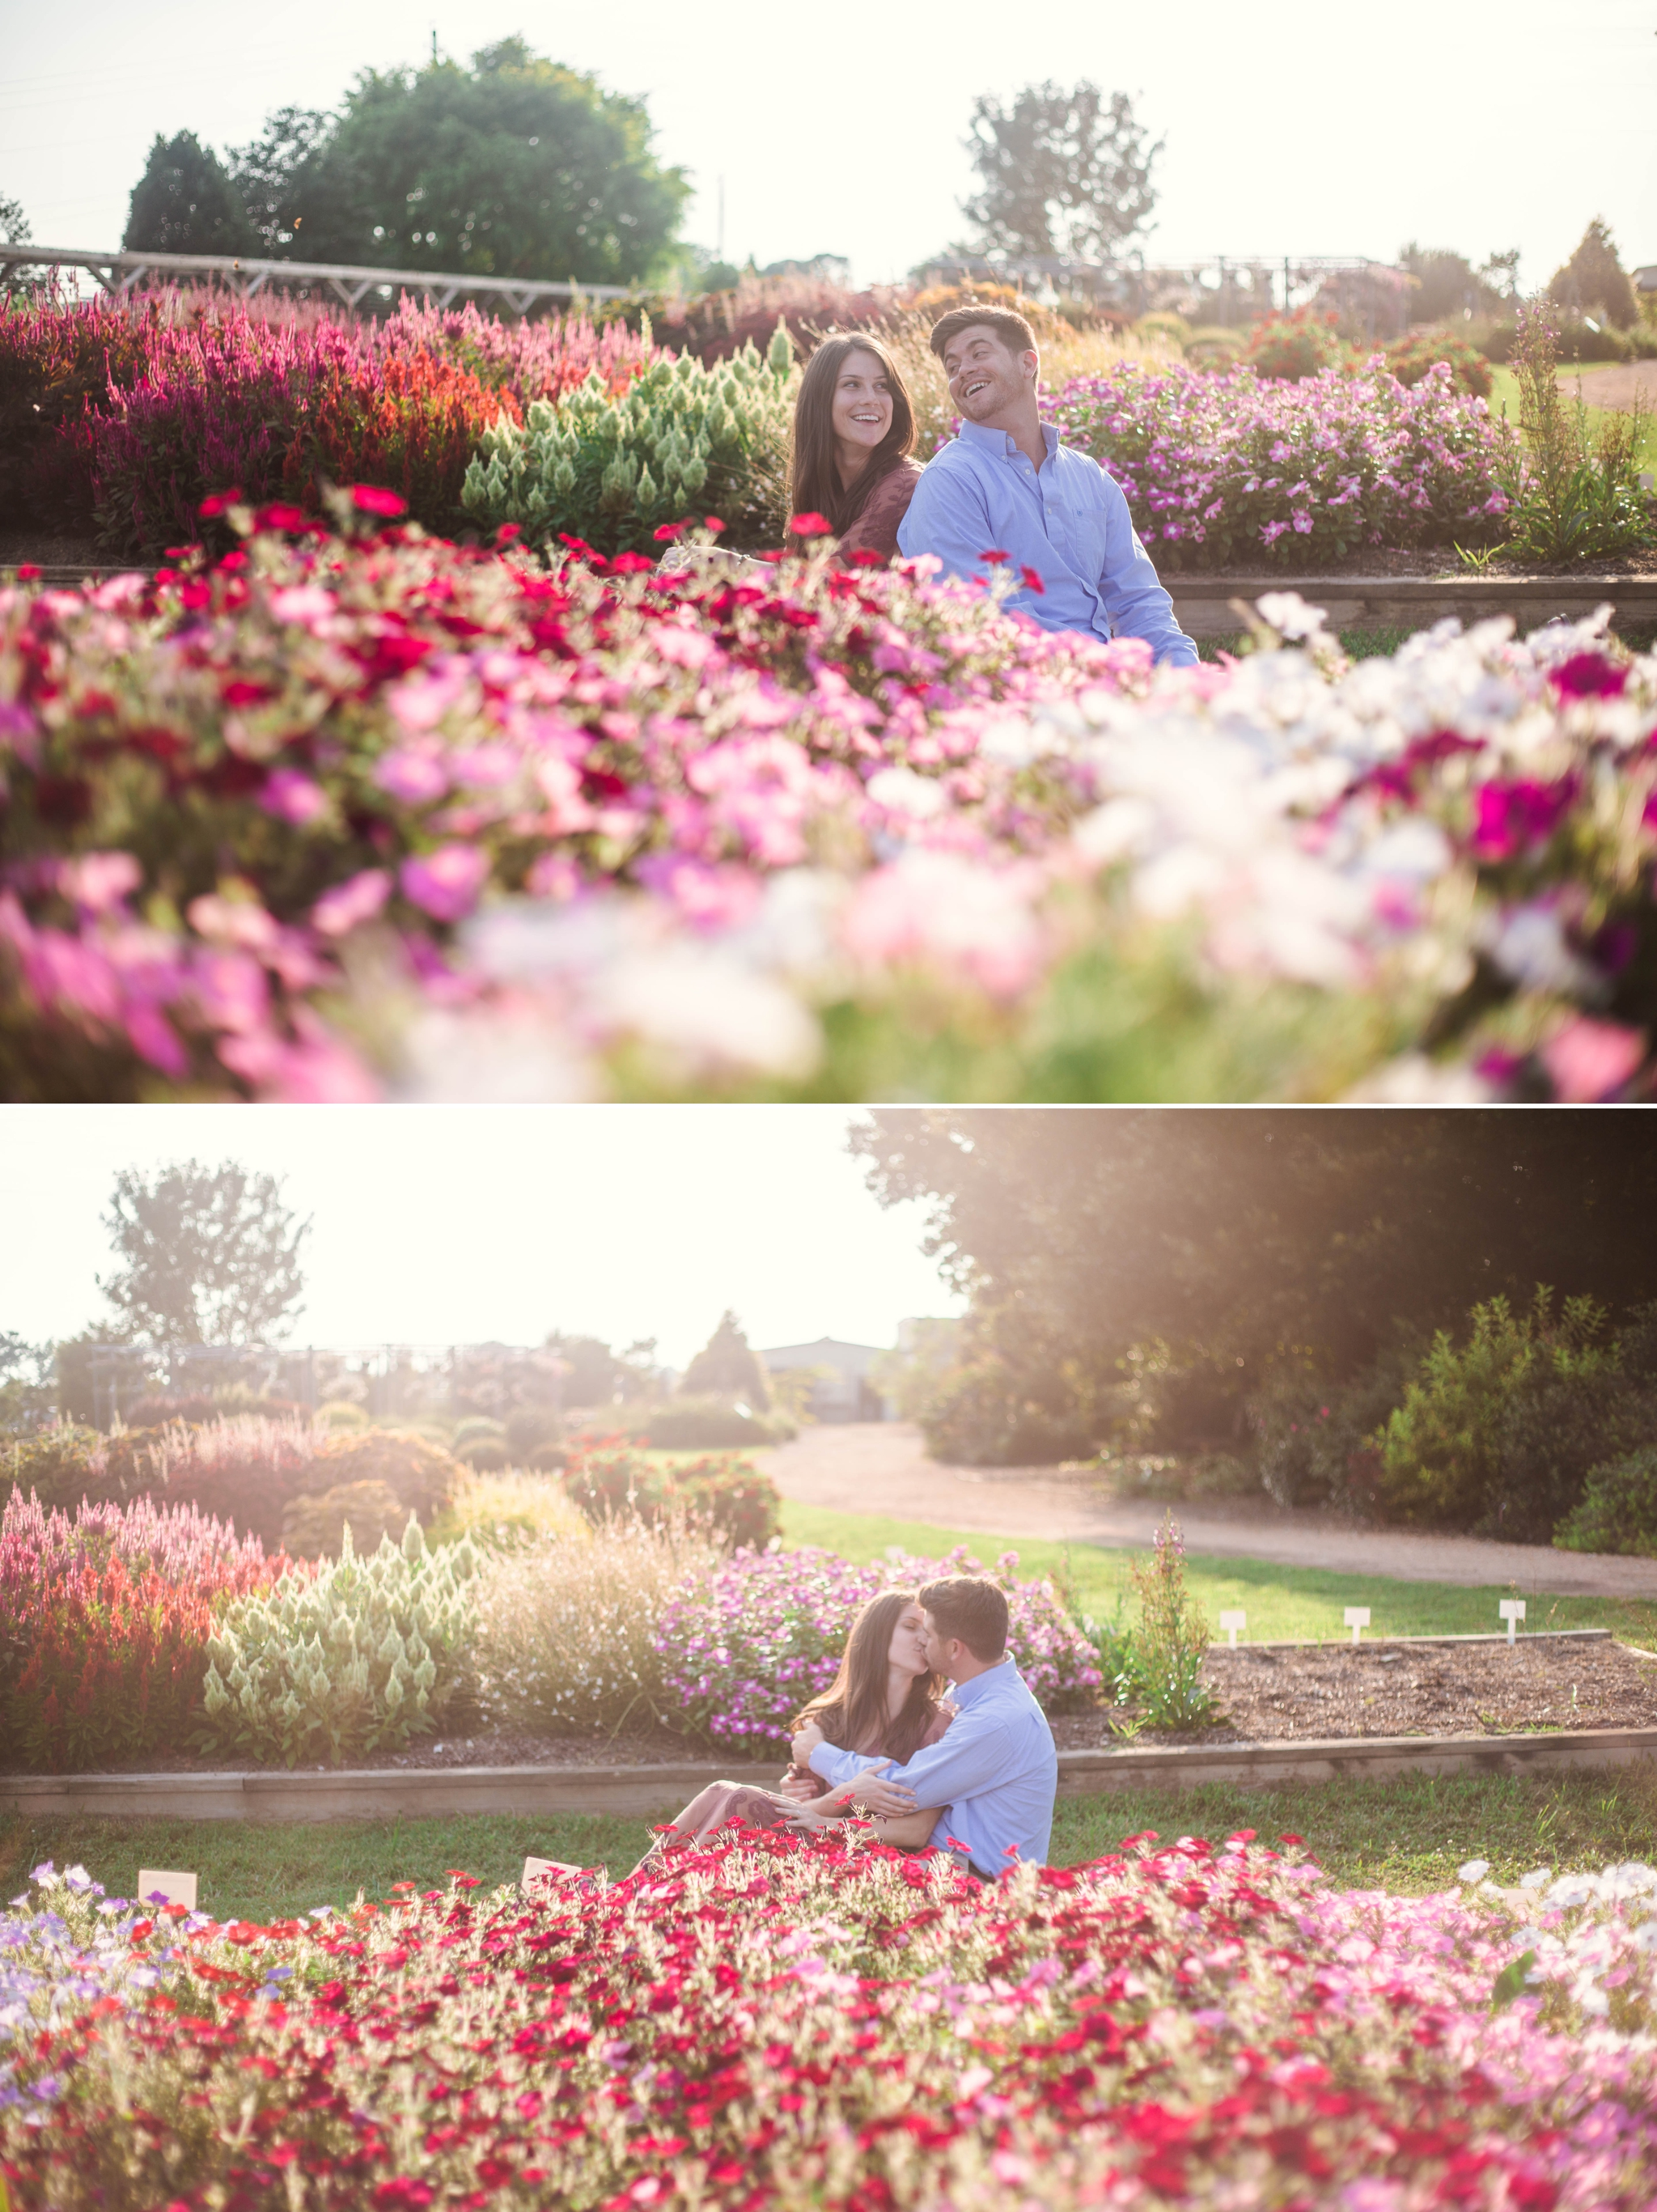 Rose Garden Engagement Aryn + Tyler -  Photography Session at the JC Raulston Arboretum - Raleigh Wedding Photographer